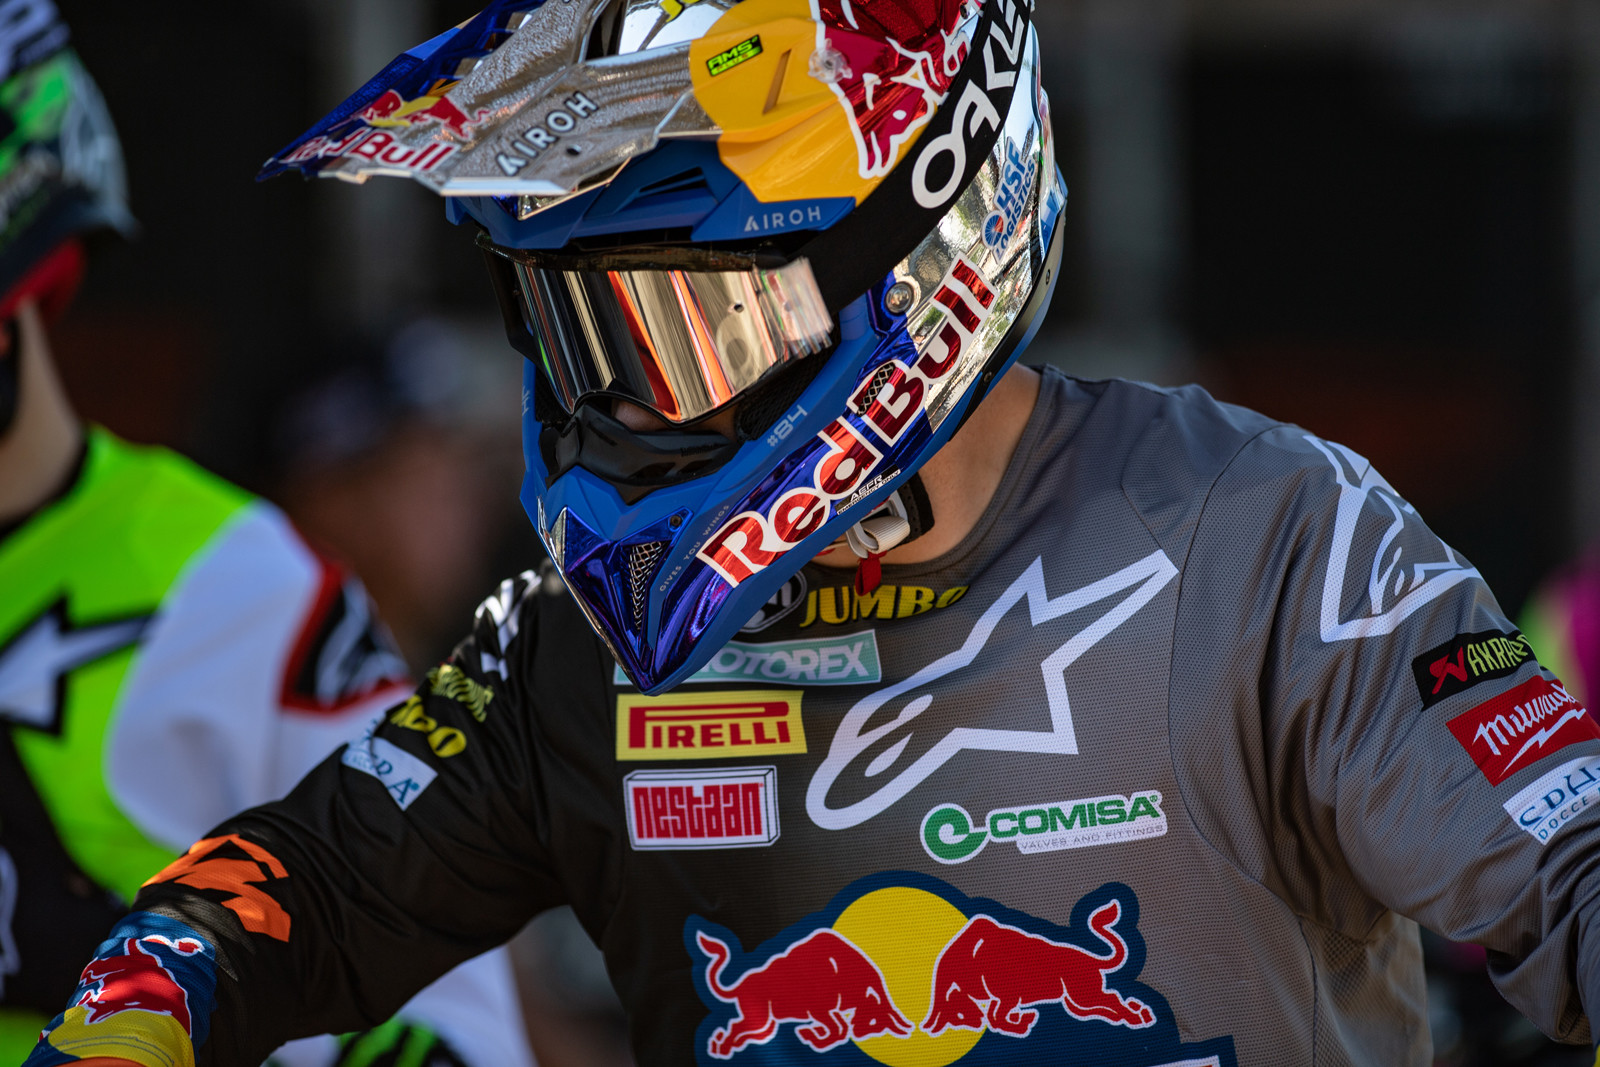 Jeffrey Herlings went 4-2 for second overall. He his still working back to racing form after missing most of last year.